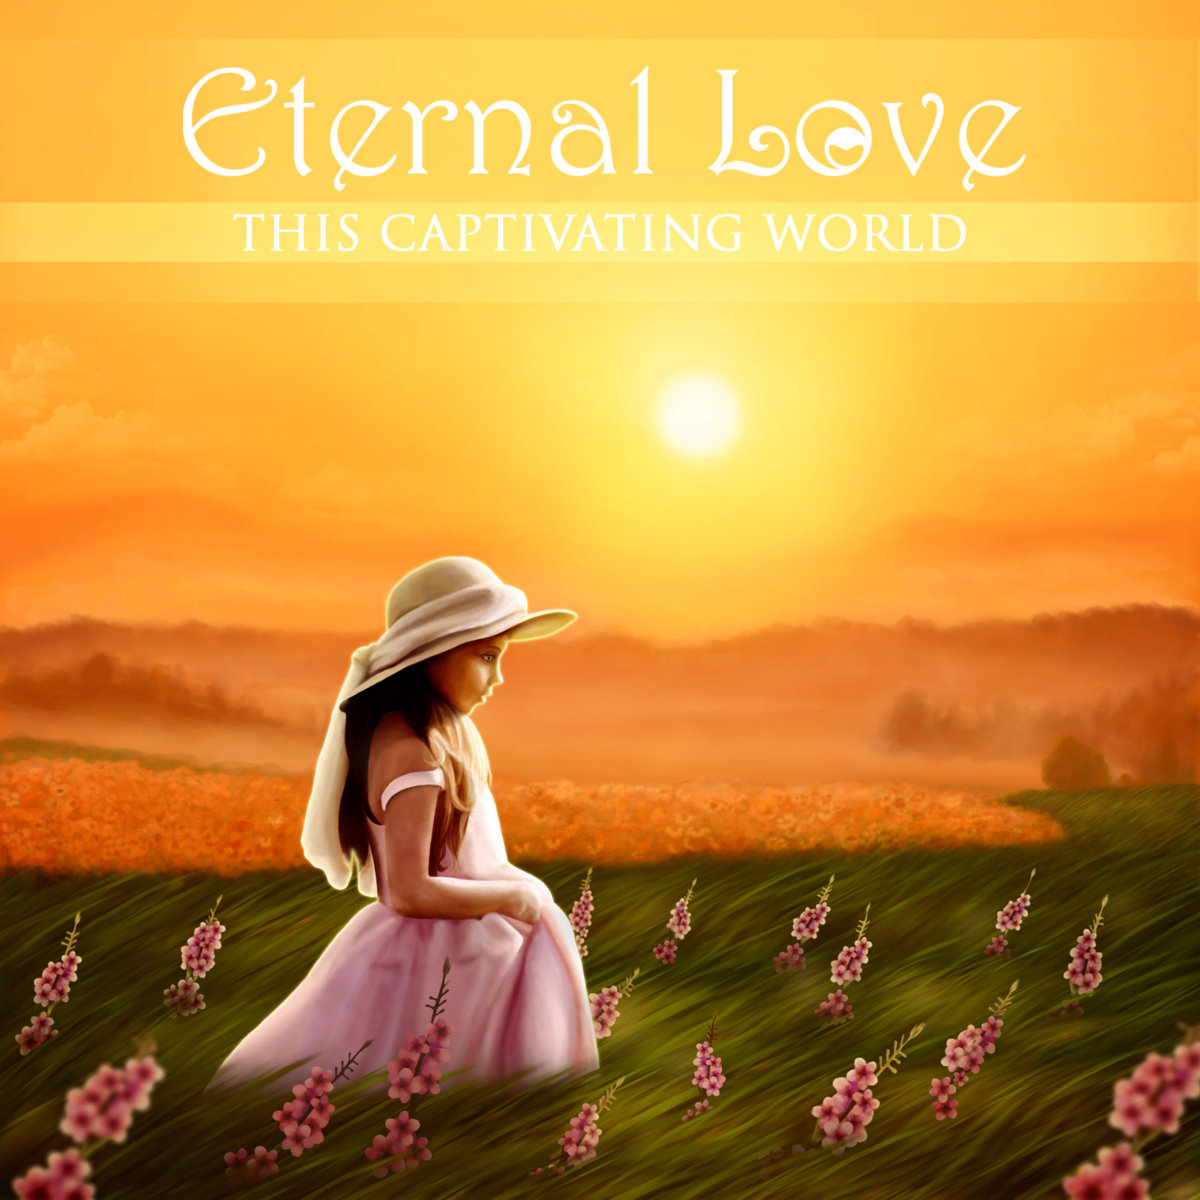 Eternal Love - This Captivating World (Original Mix) @ 'This Captivating World EP' album (ambient, enigma)